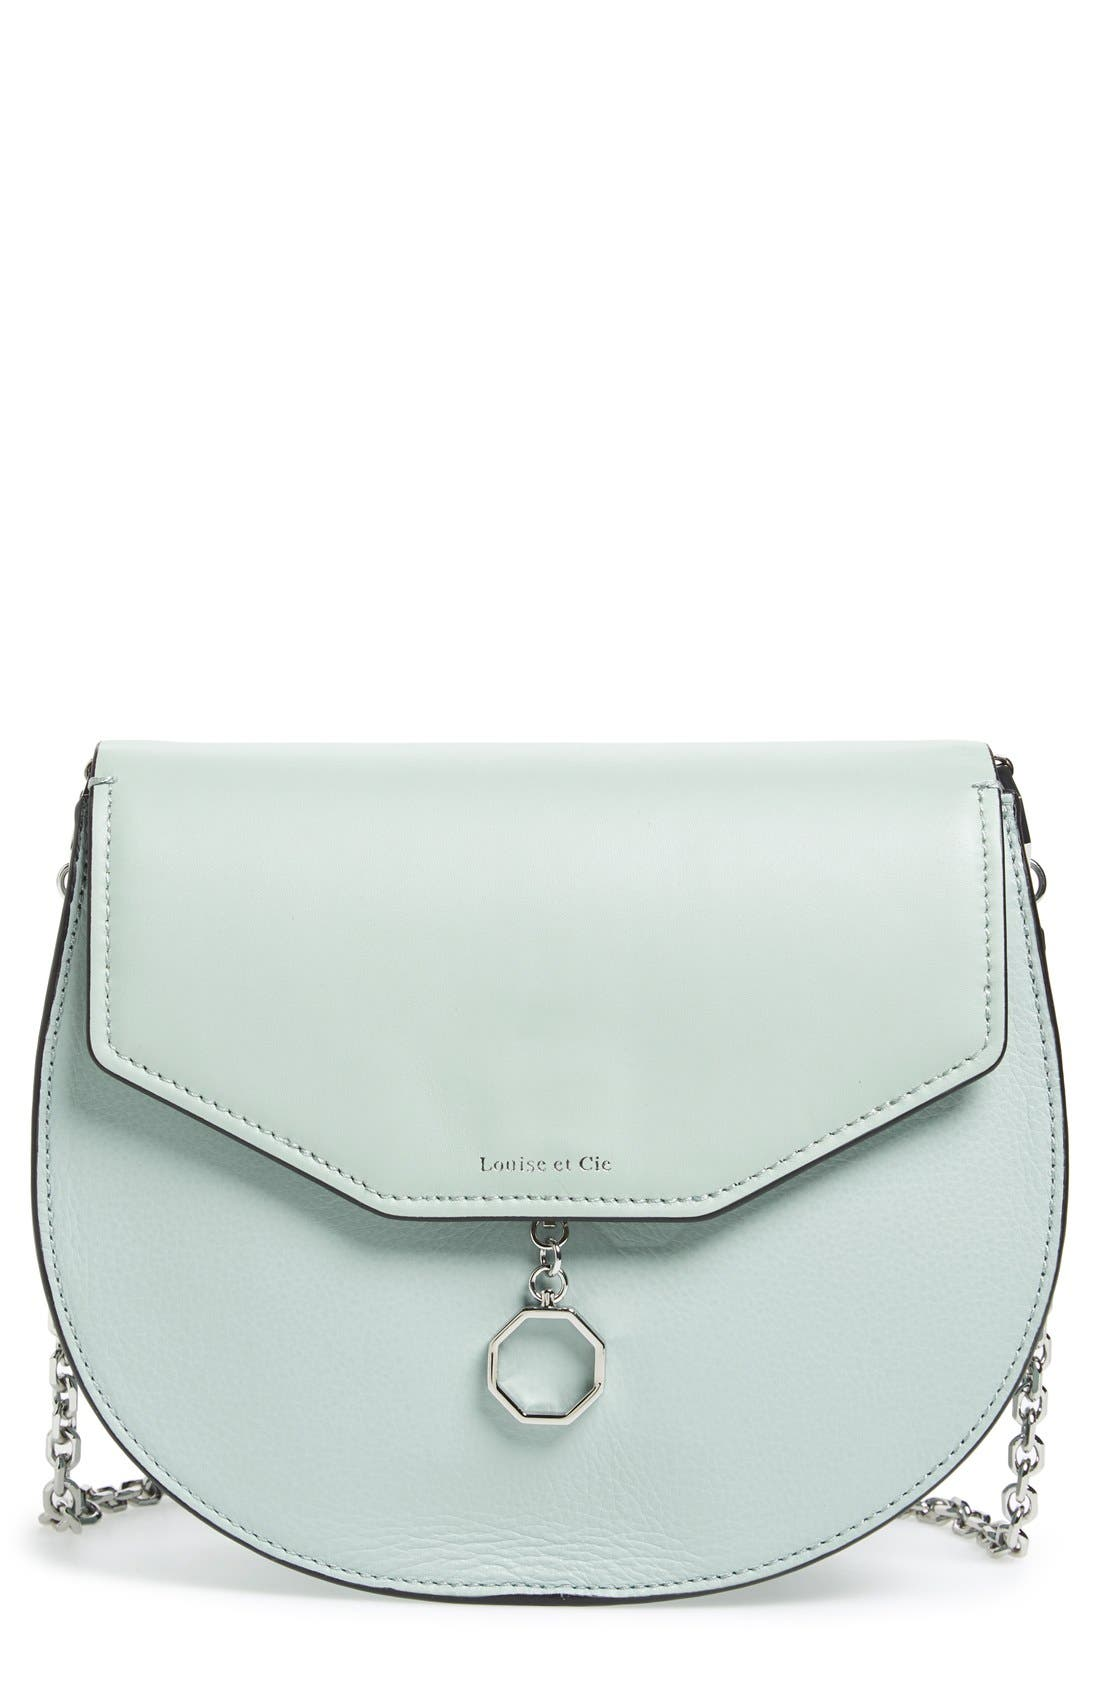 Main Image - Louise et Cie 'Jael' Leather Shoulder Bag